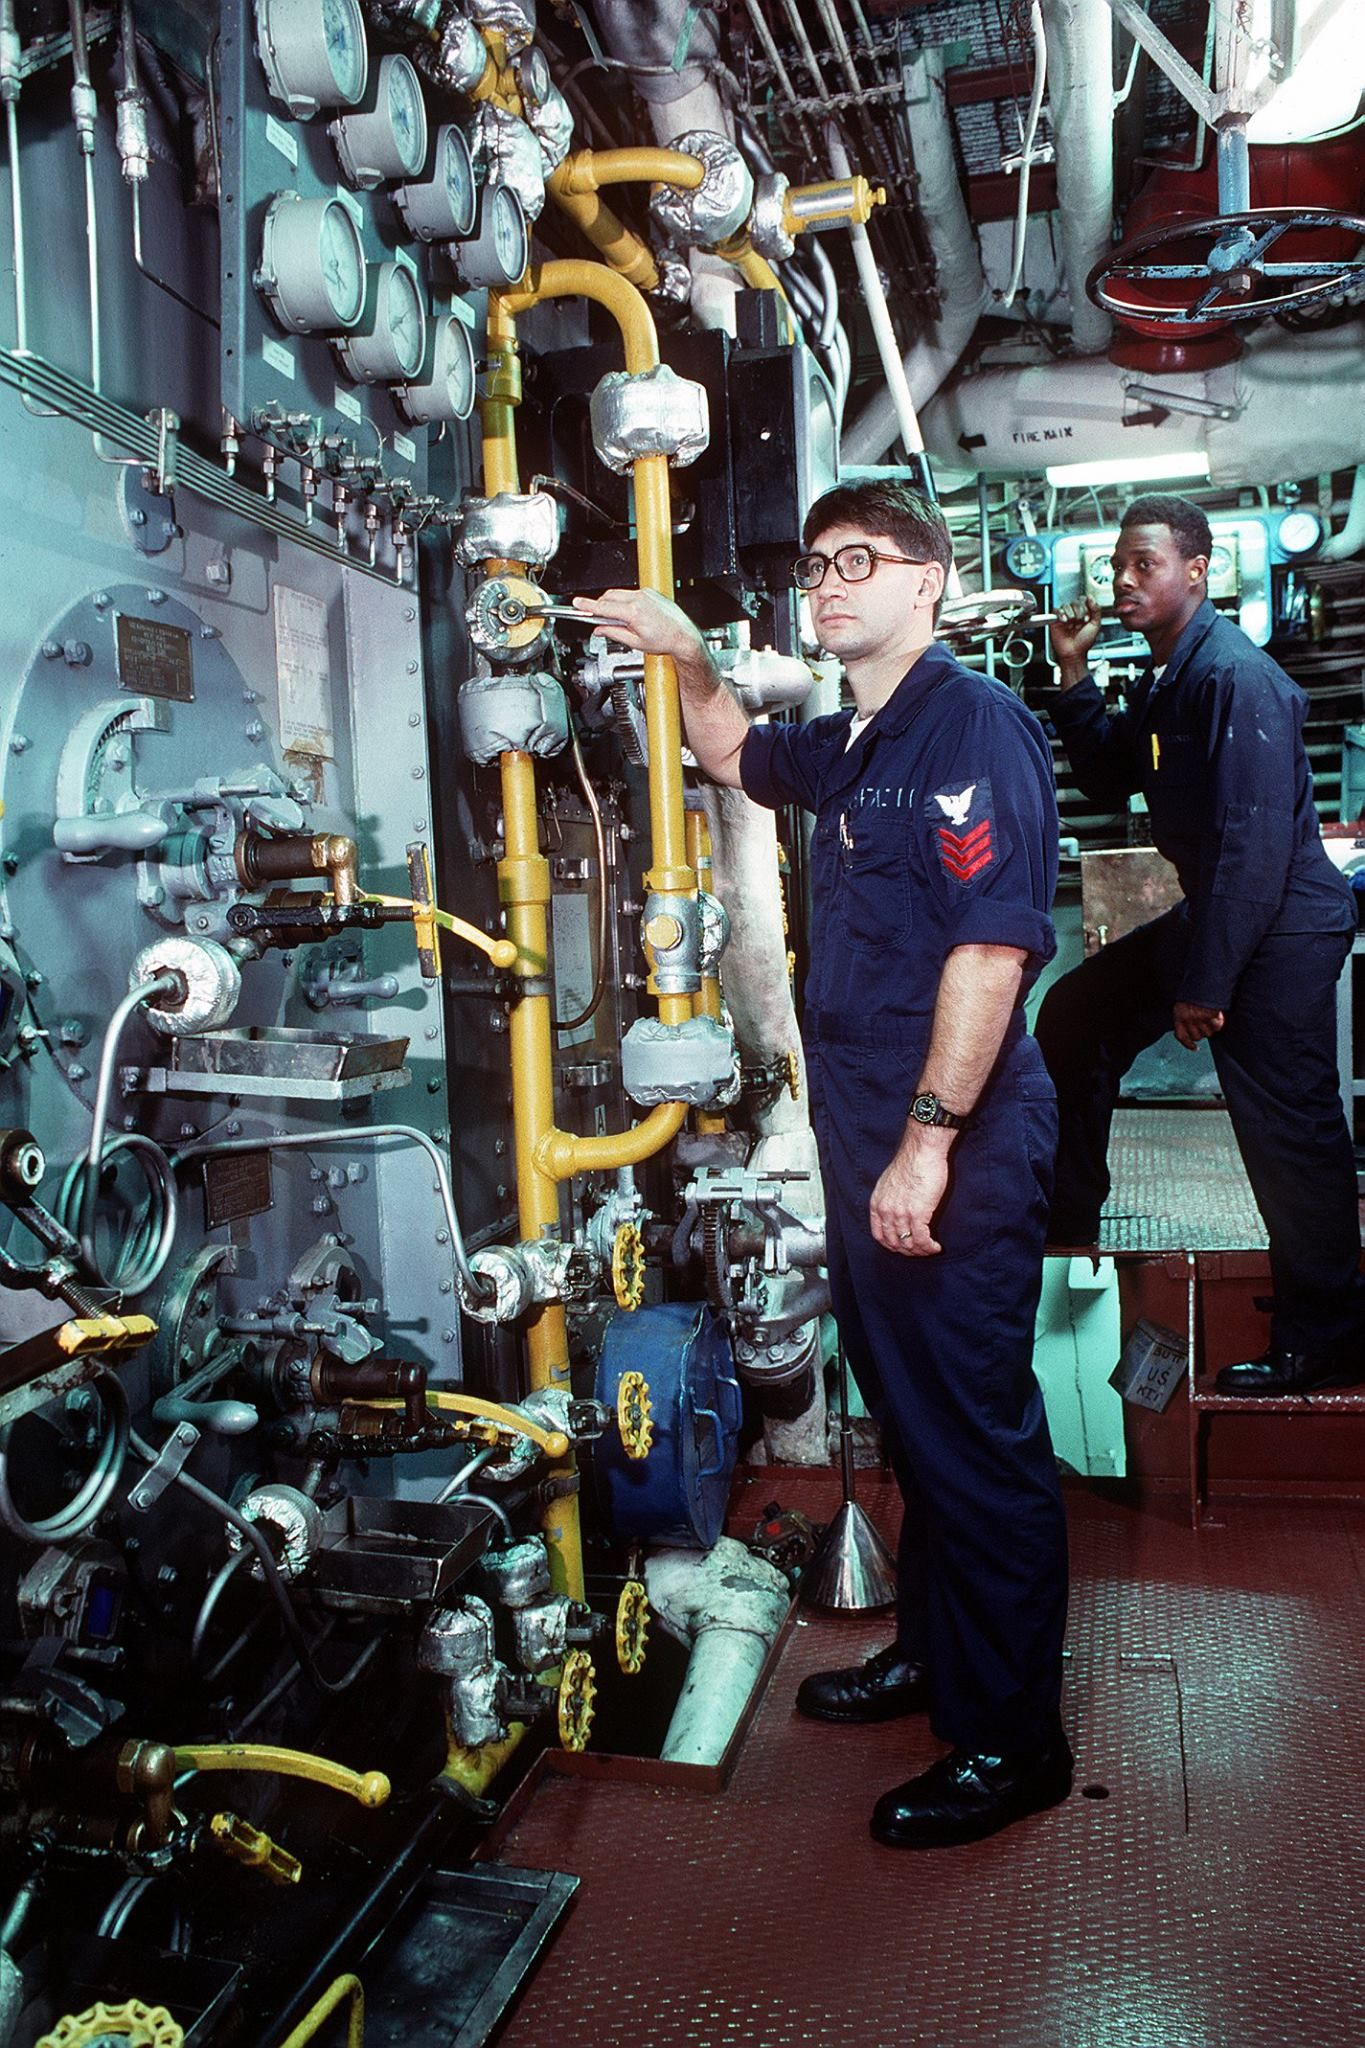 Queen Mary Engine Room: Boiler Technicians Monitor Gauges In The Boiler Room Of